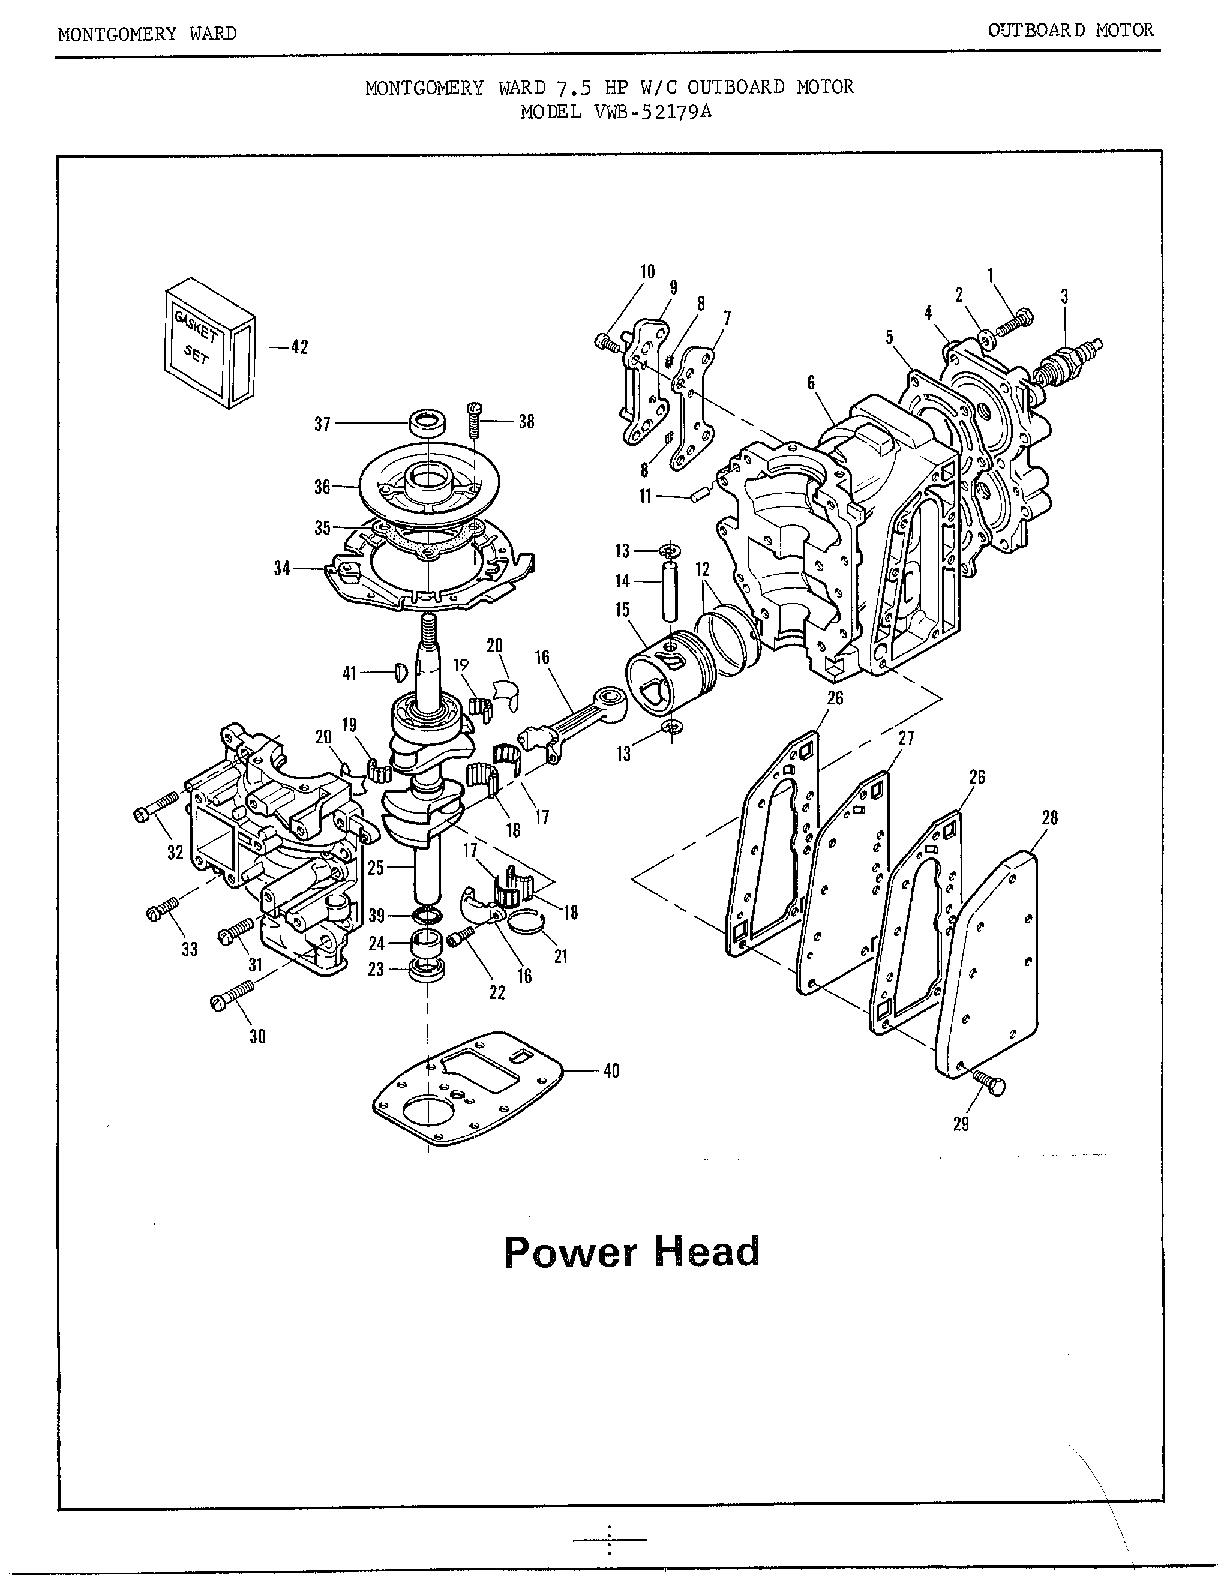 Mercury Outboard Motor Wiring Diagram 4 5 Hp, Mercury